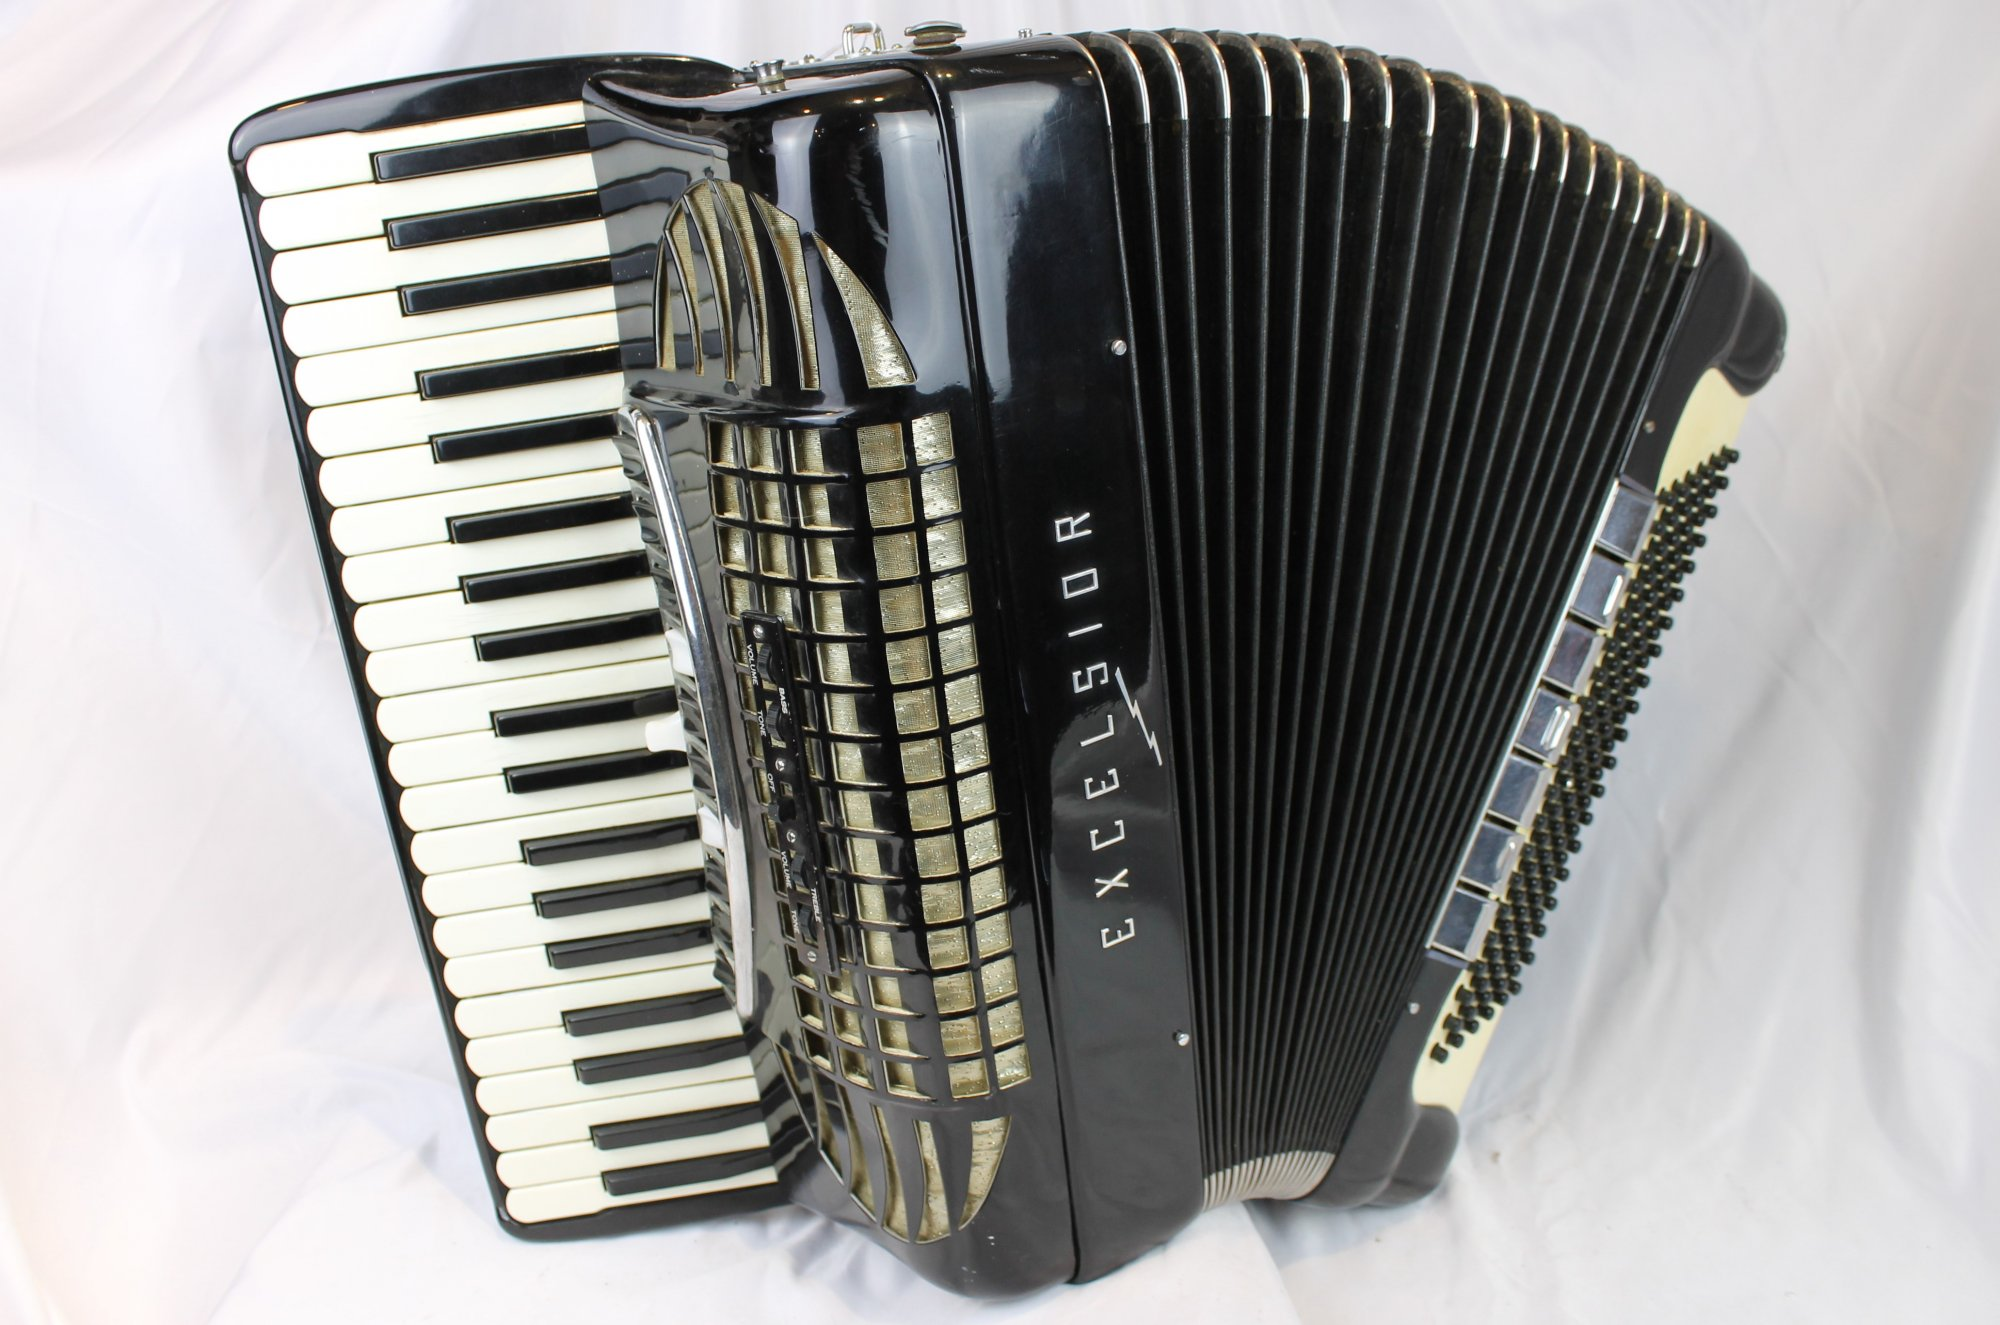 4242 - Black Excelsior Piano Accordion LMMH 41 120